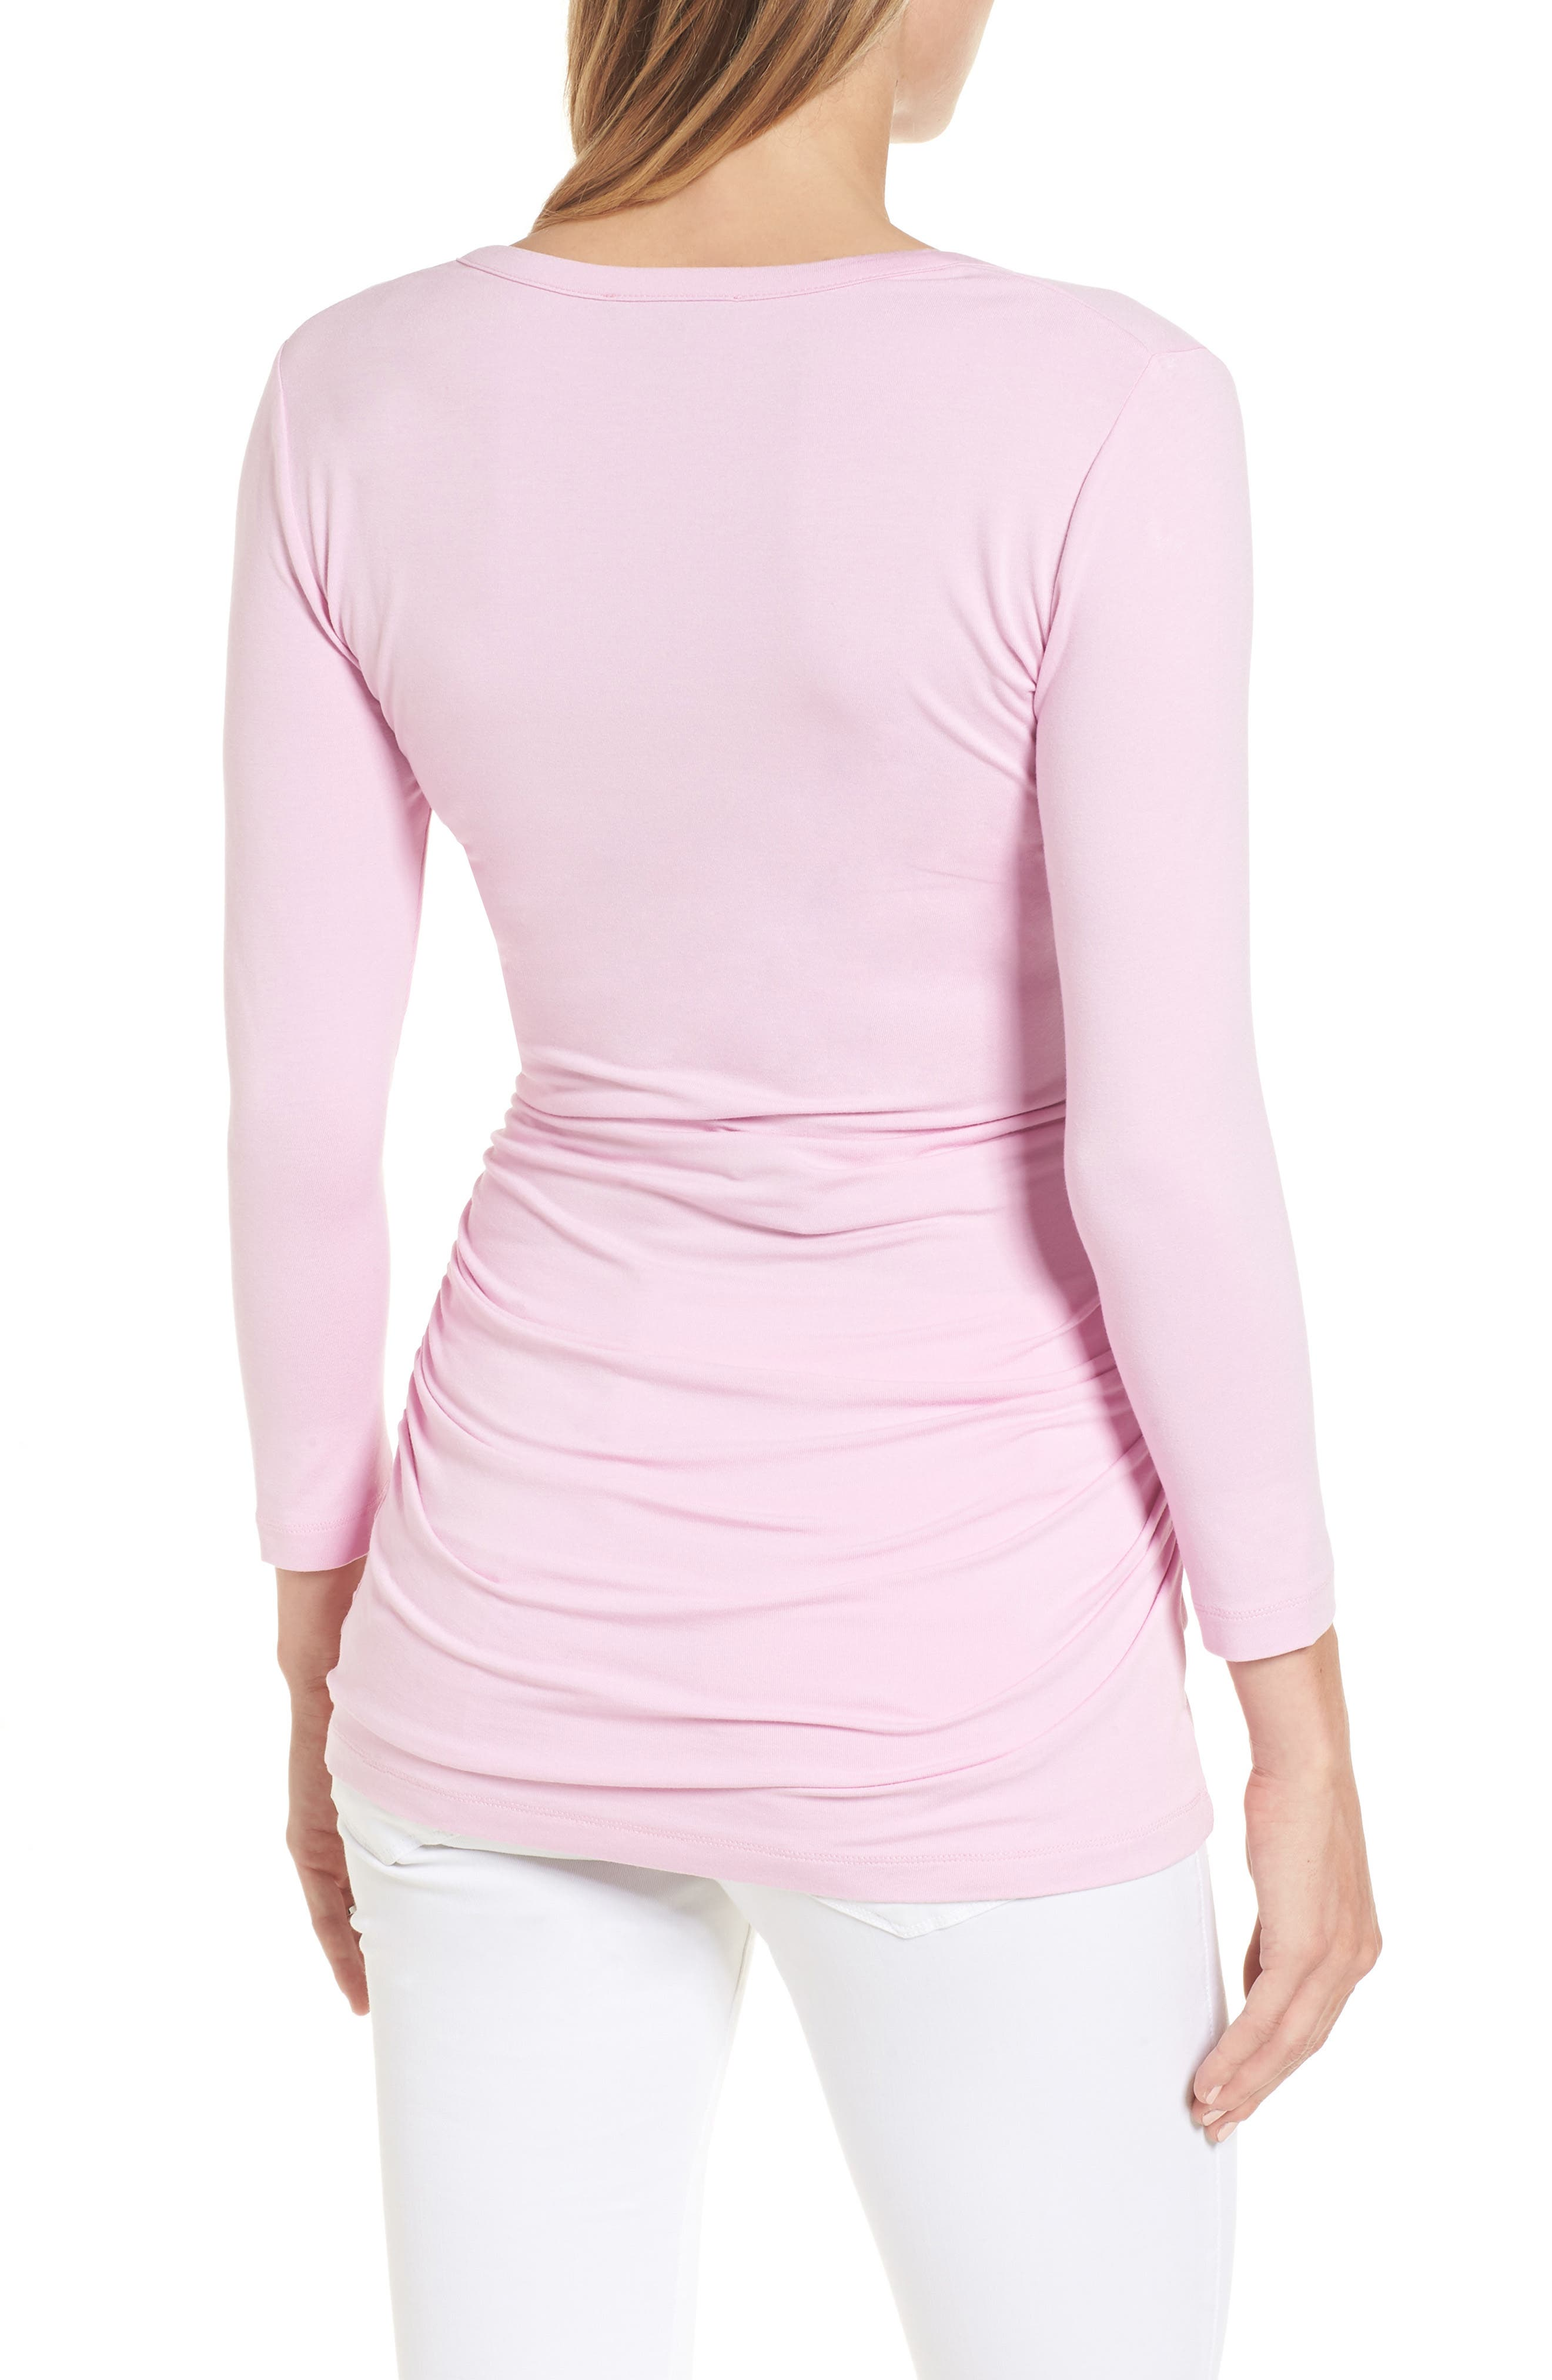 Harley Maternity Top,                             Alternate thumbnail 2, color,                             Lilac